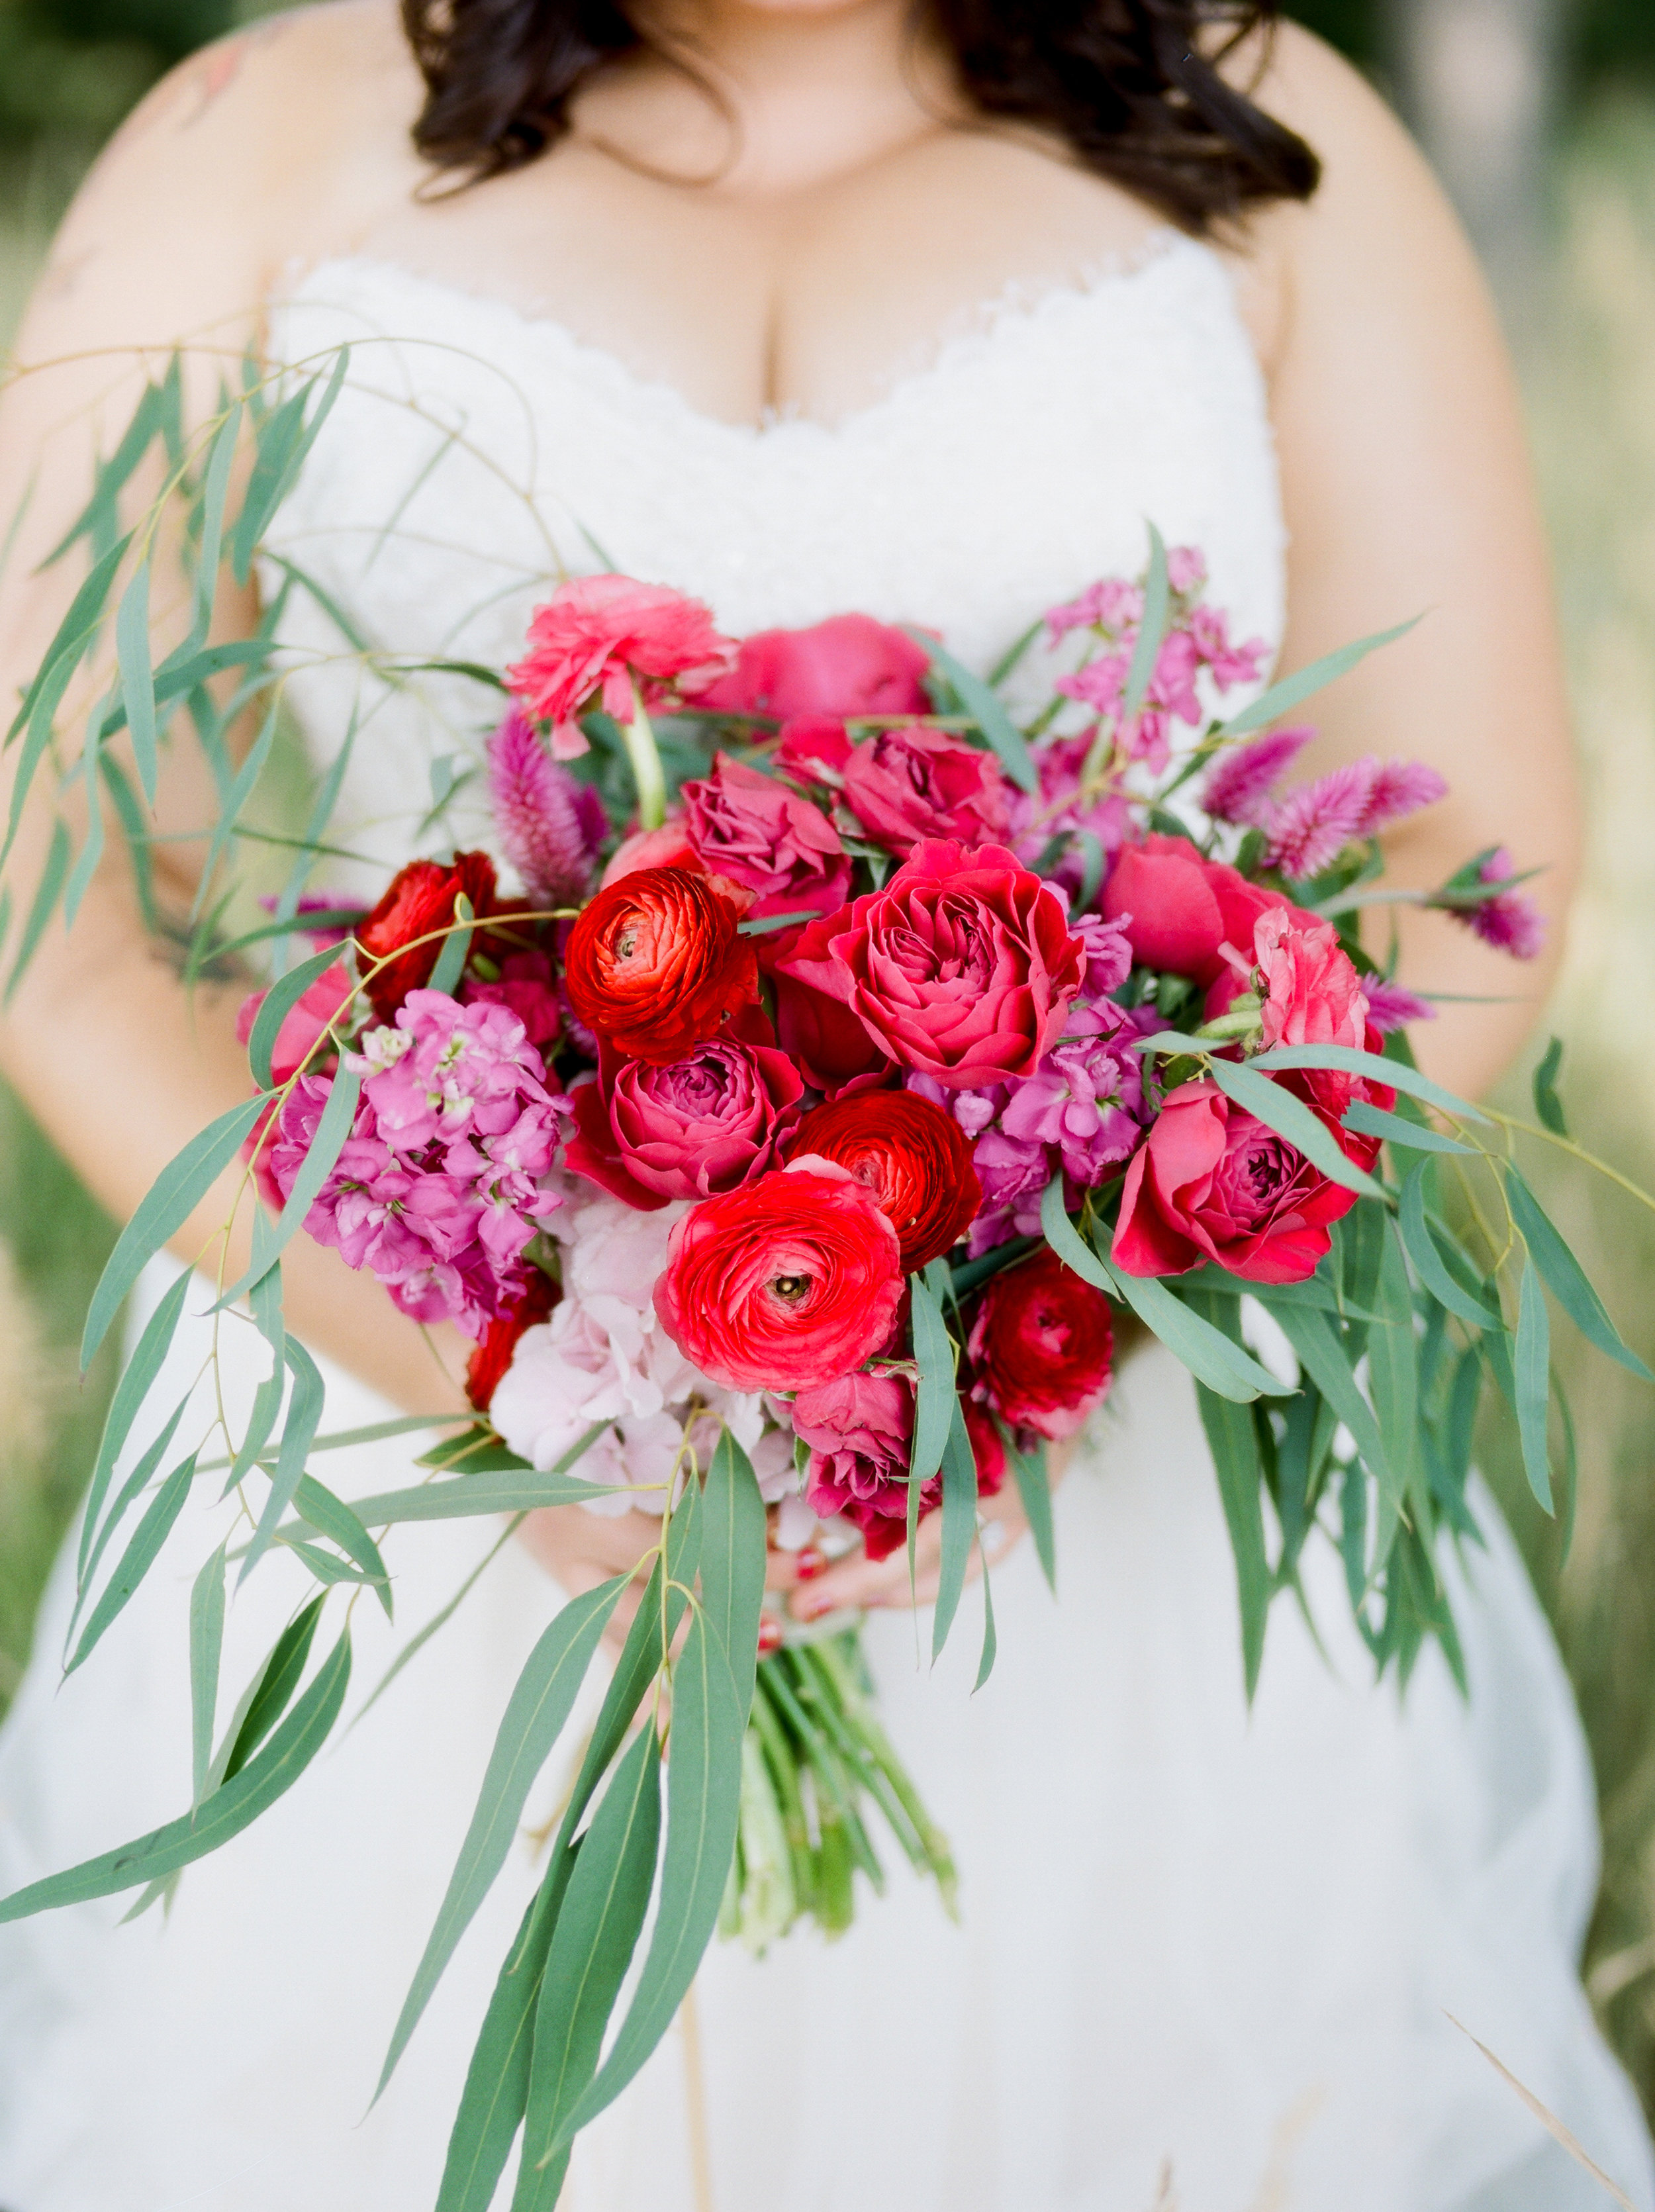 Flowers by Lace and Lilies, Vibrant Pink Bridal Bouquet, Ranunculus, Garden Rose, Eucalyptus